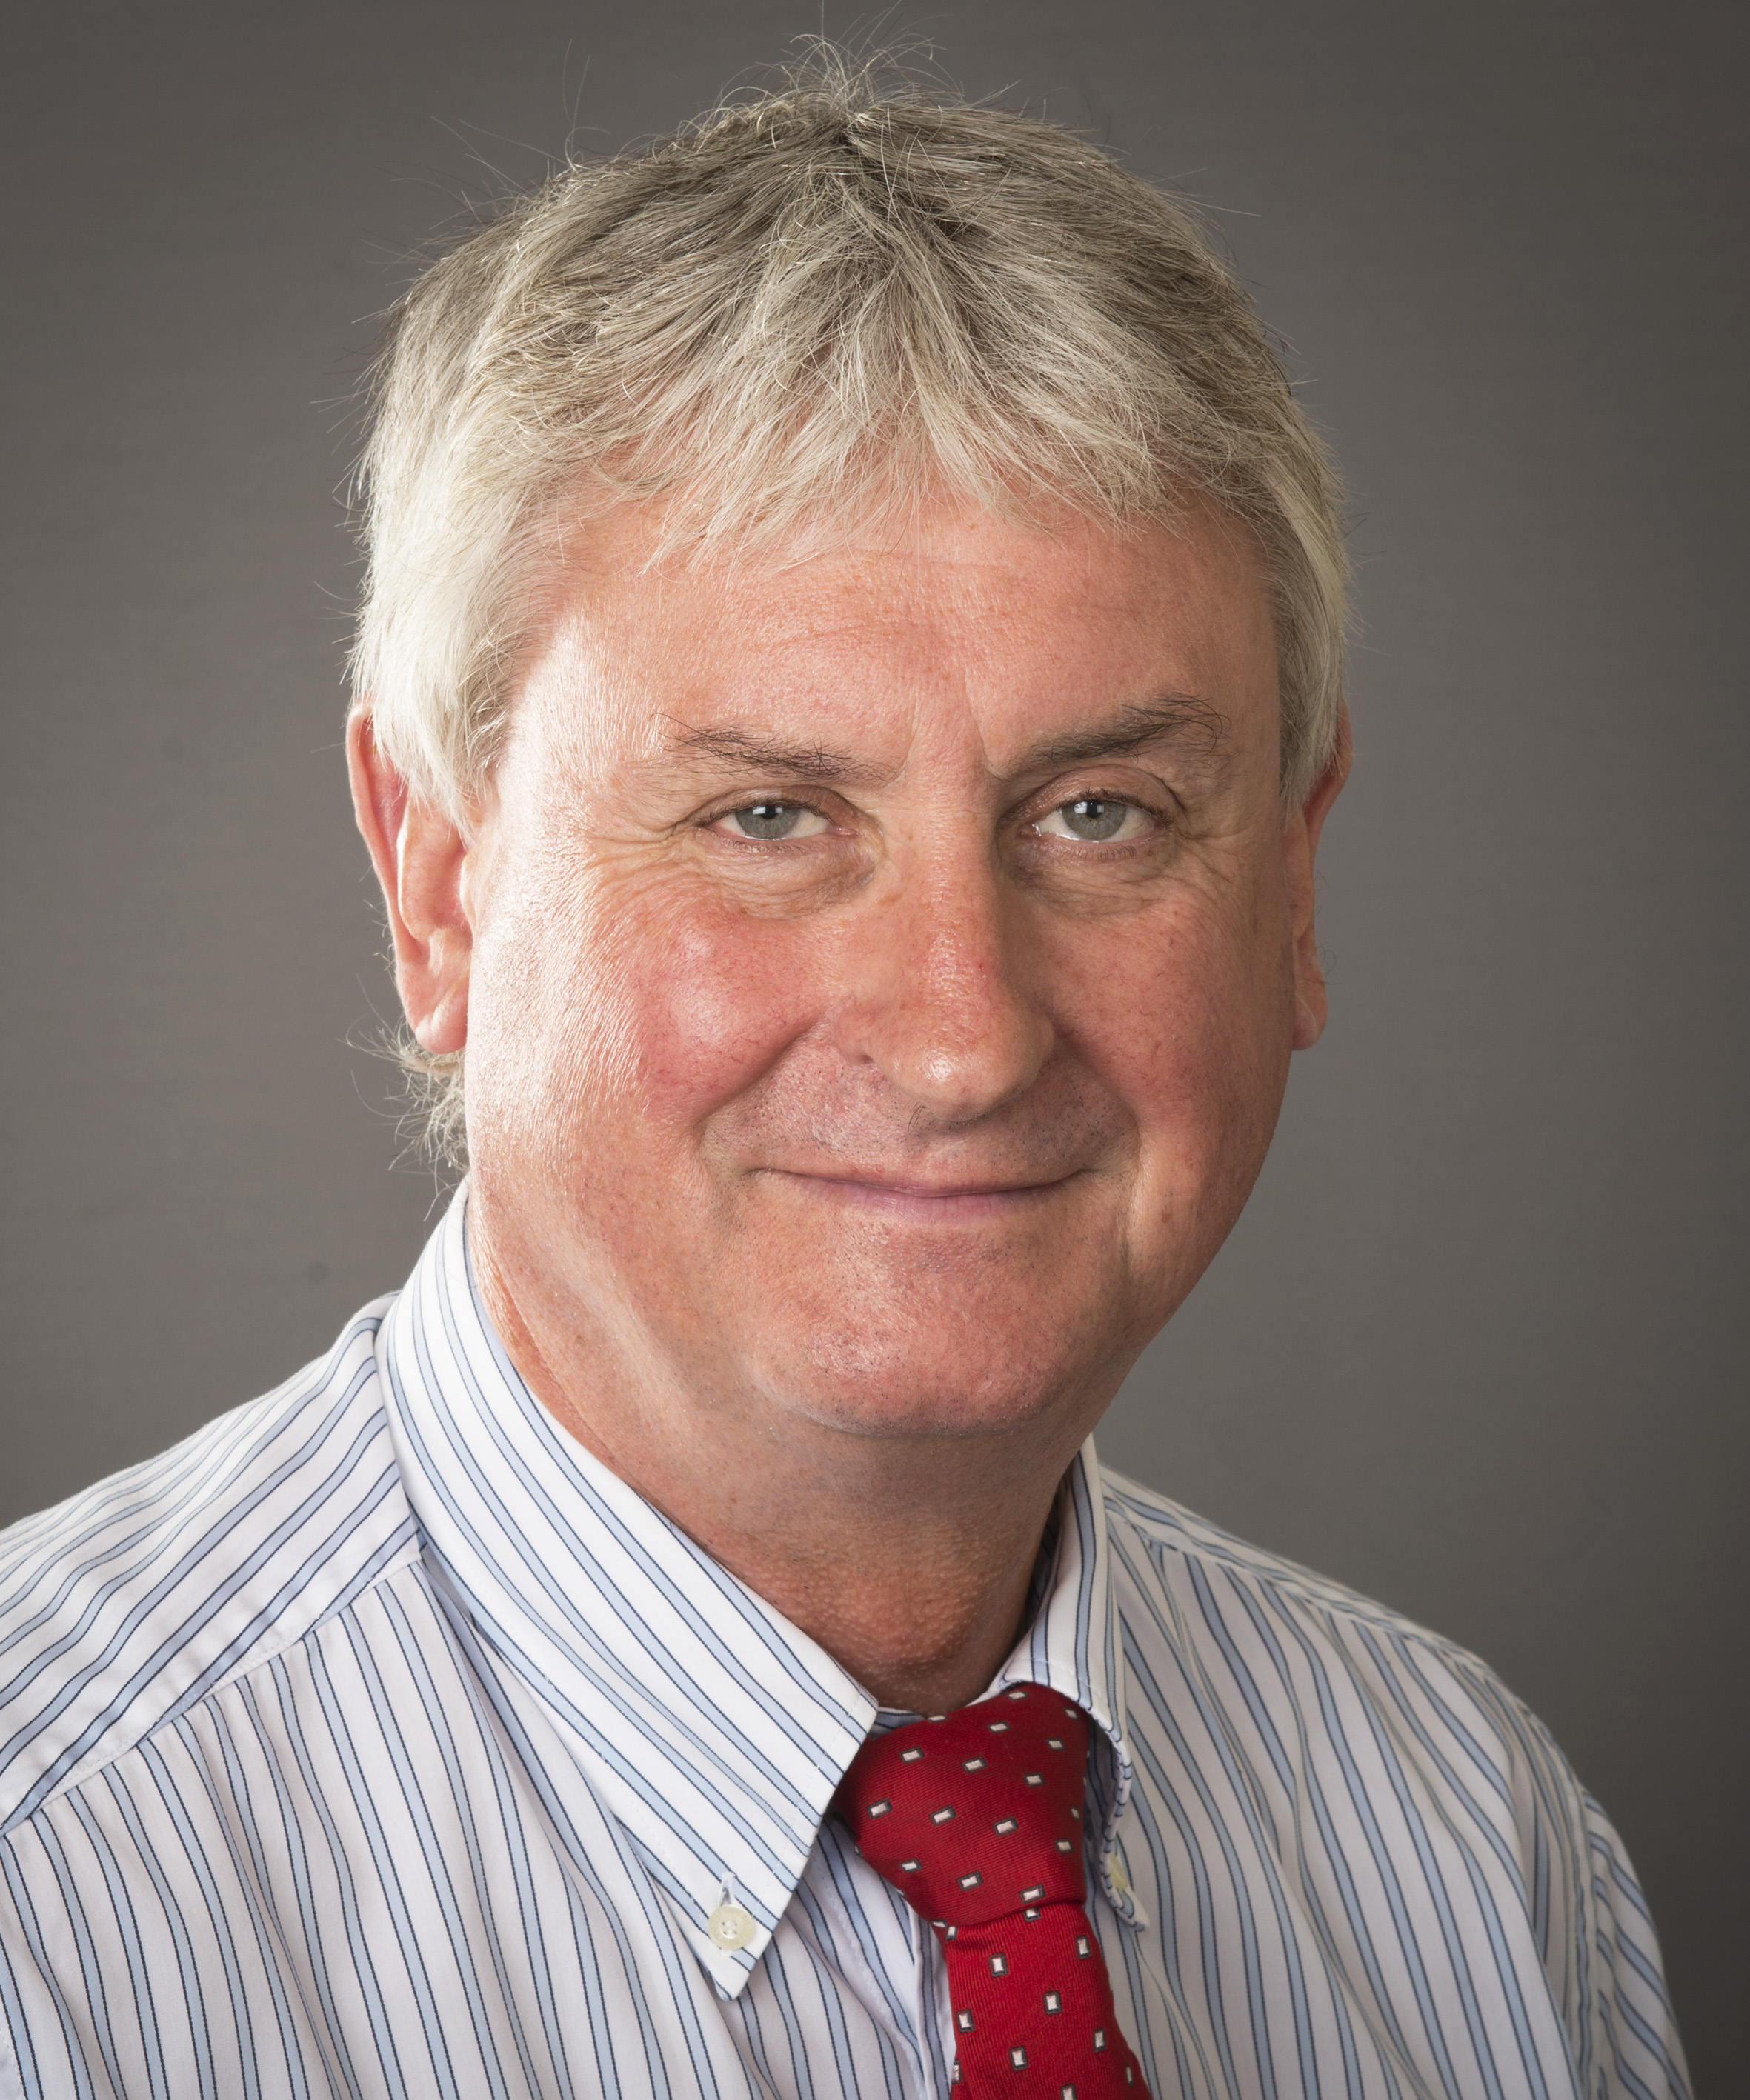 STEPPING DOWN: Henry Cronin, lay chair of Hambleton, Richmondshire and Whitby CCG.